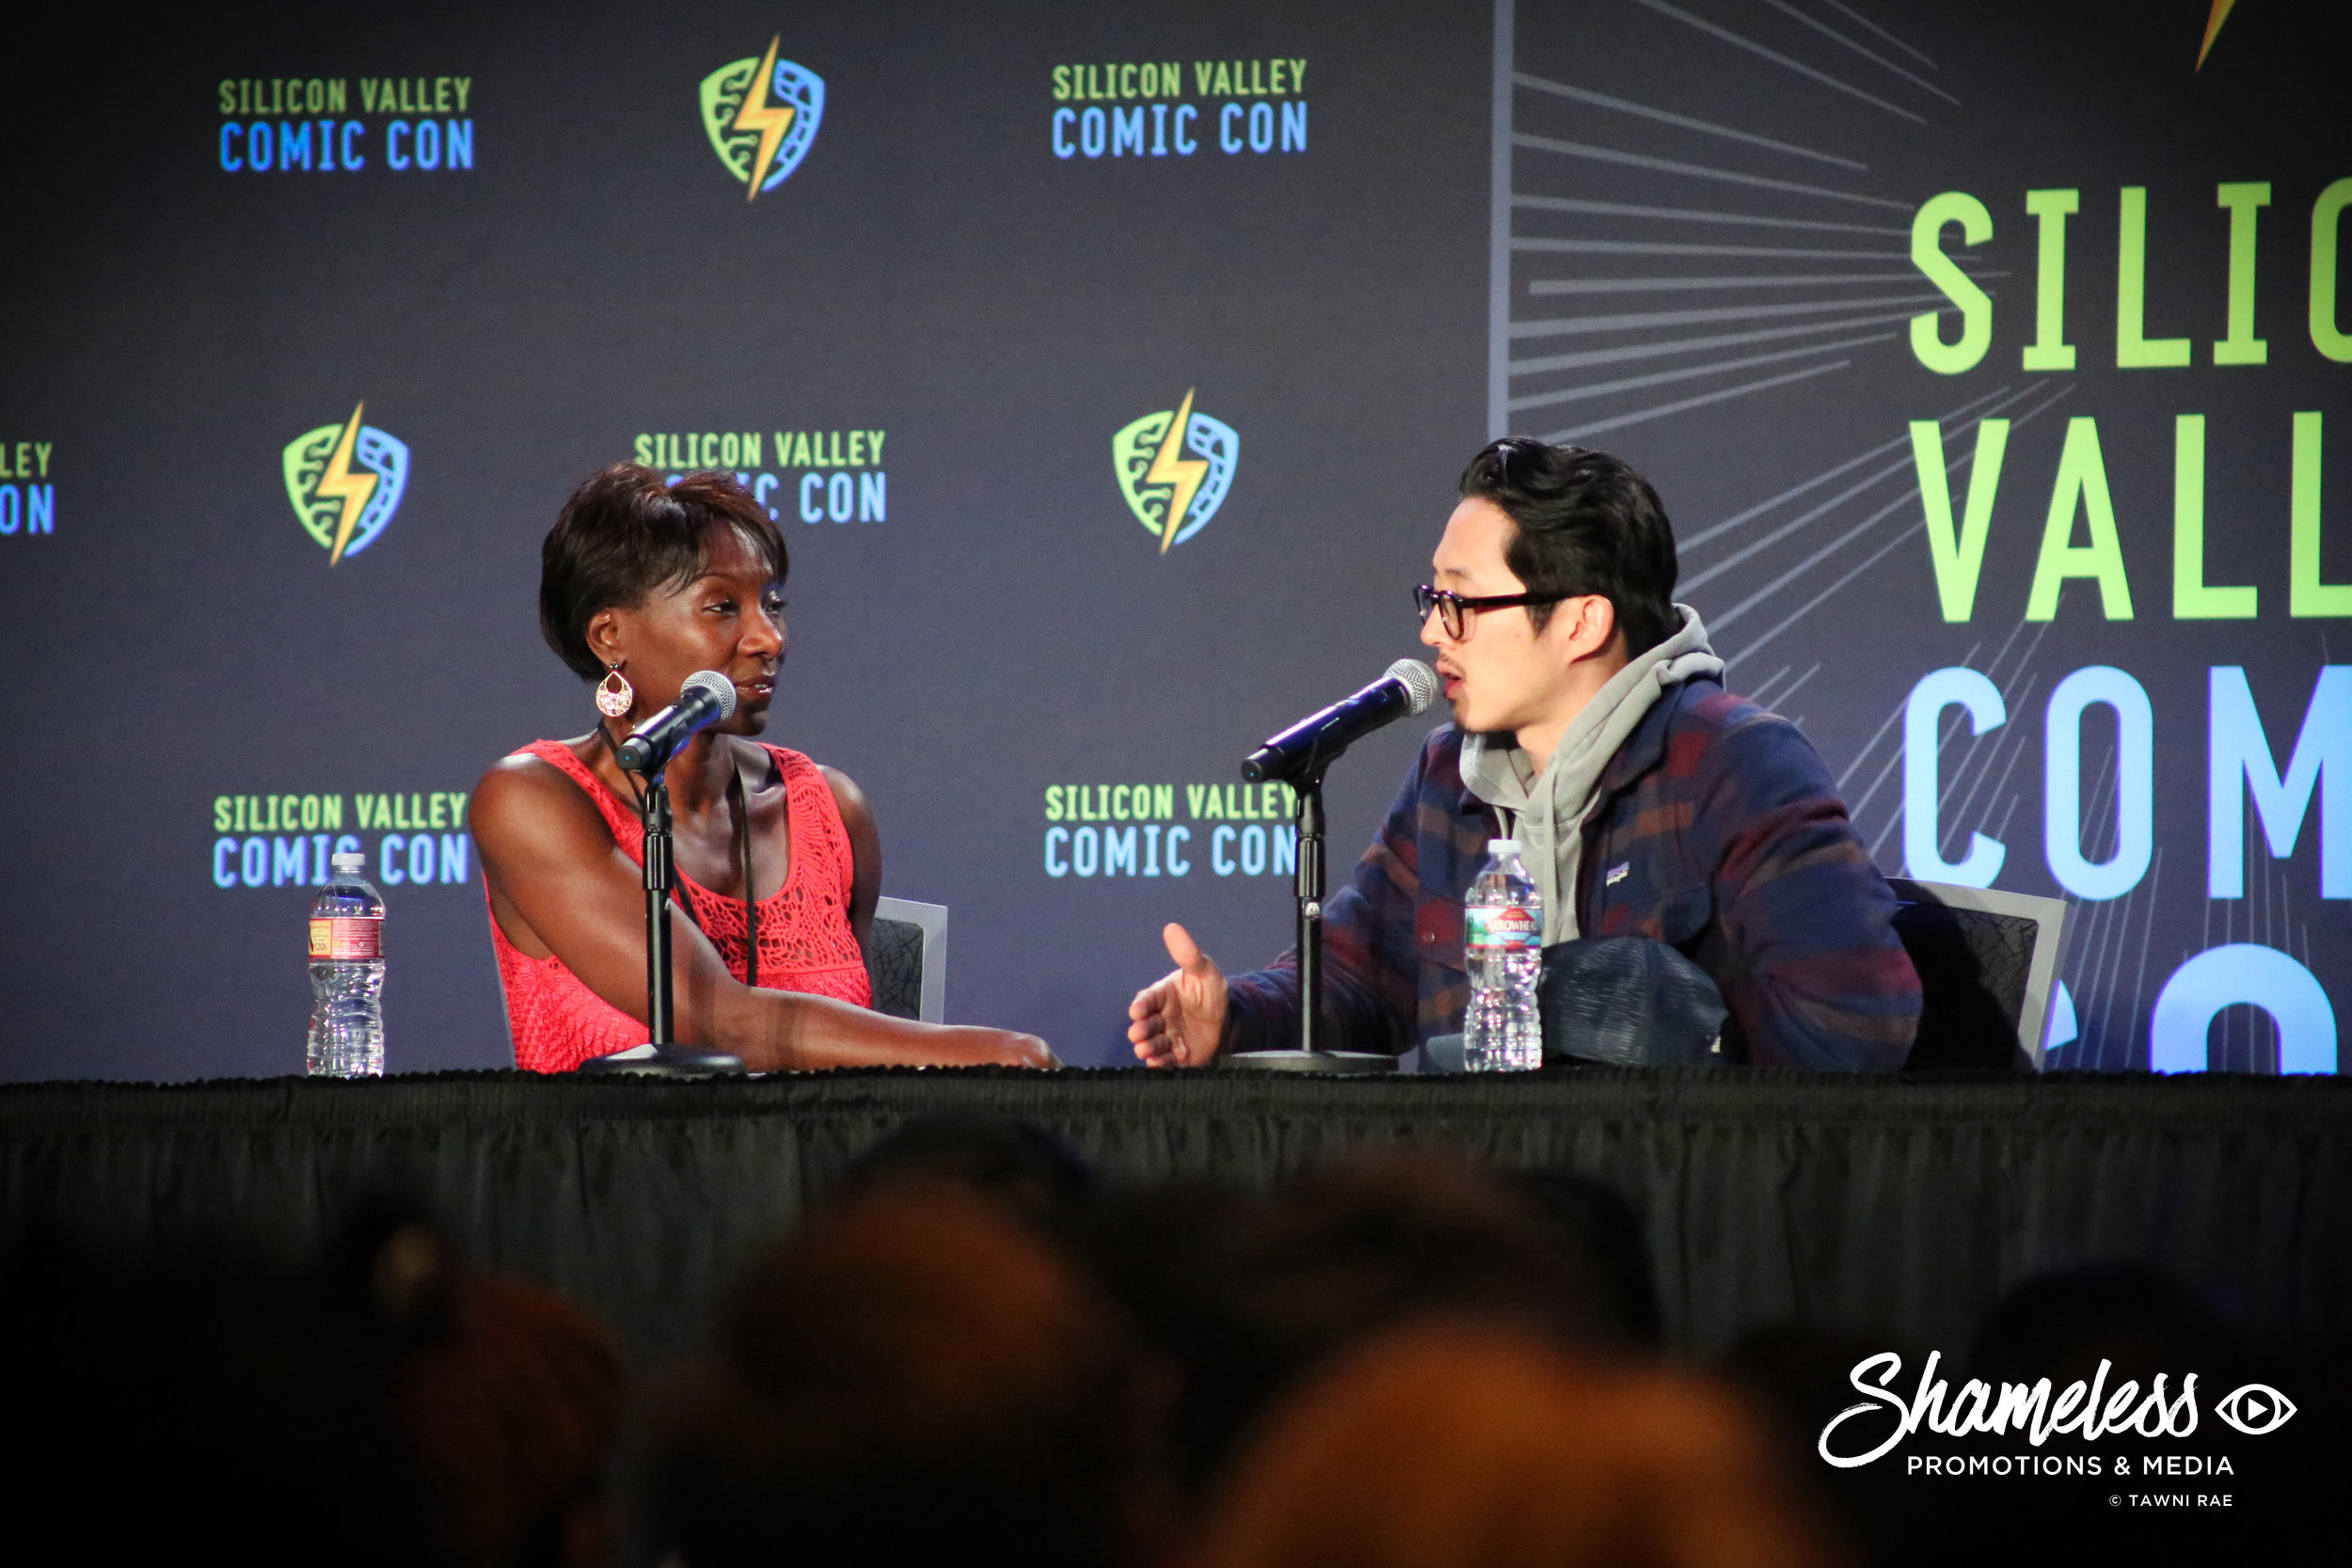 Jeryl Prescott and Steven Yeun at Silicon Valley Comic Con. April 22, 2017. Photo Credit: Tawni Kuhn.